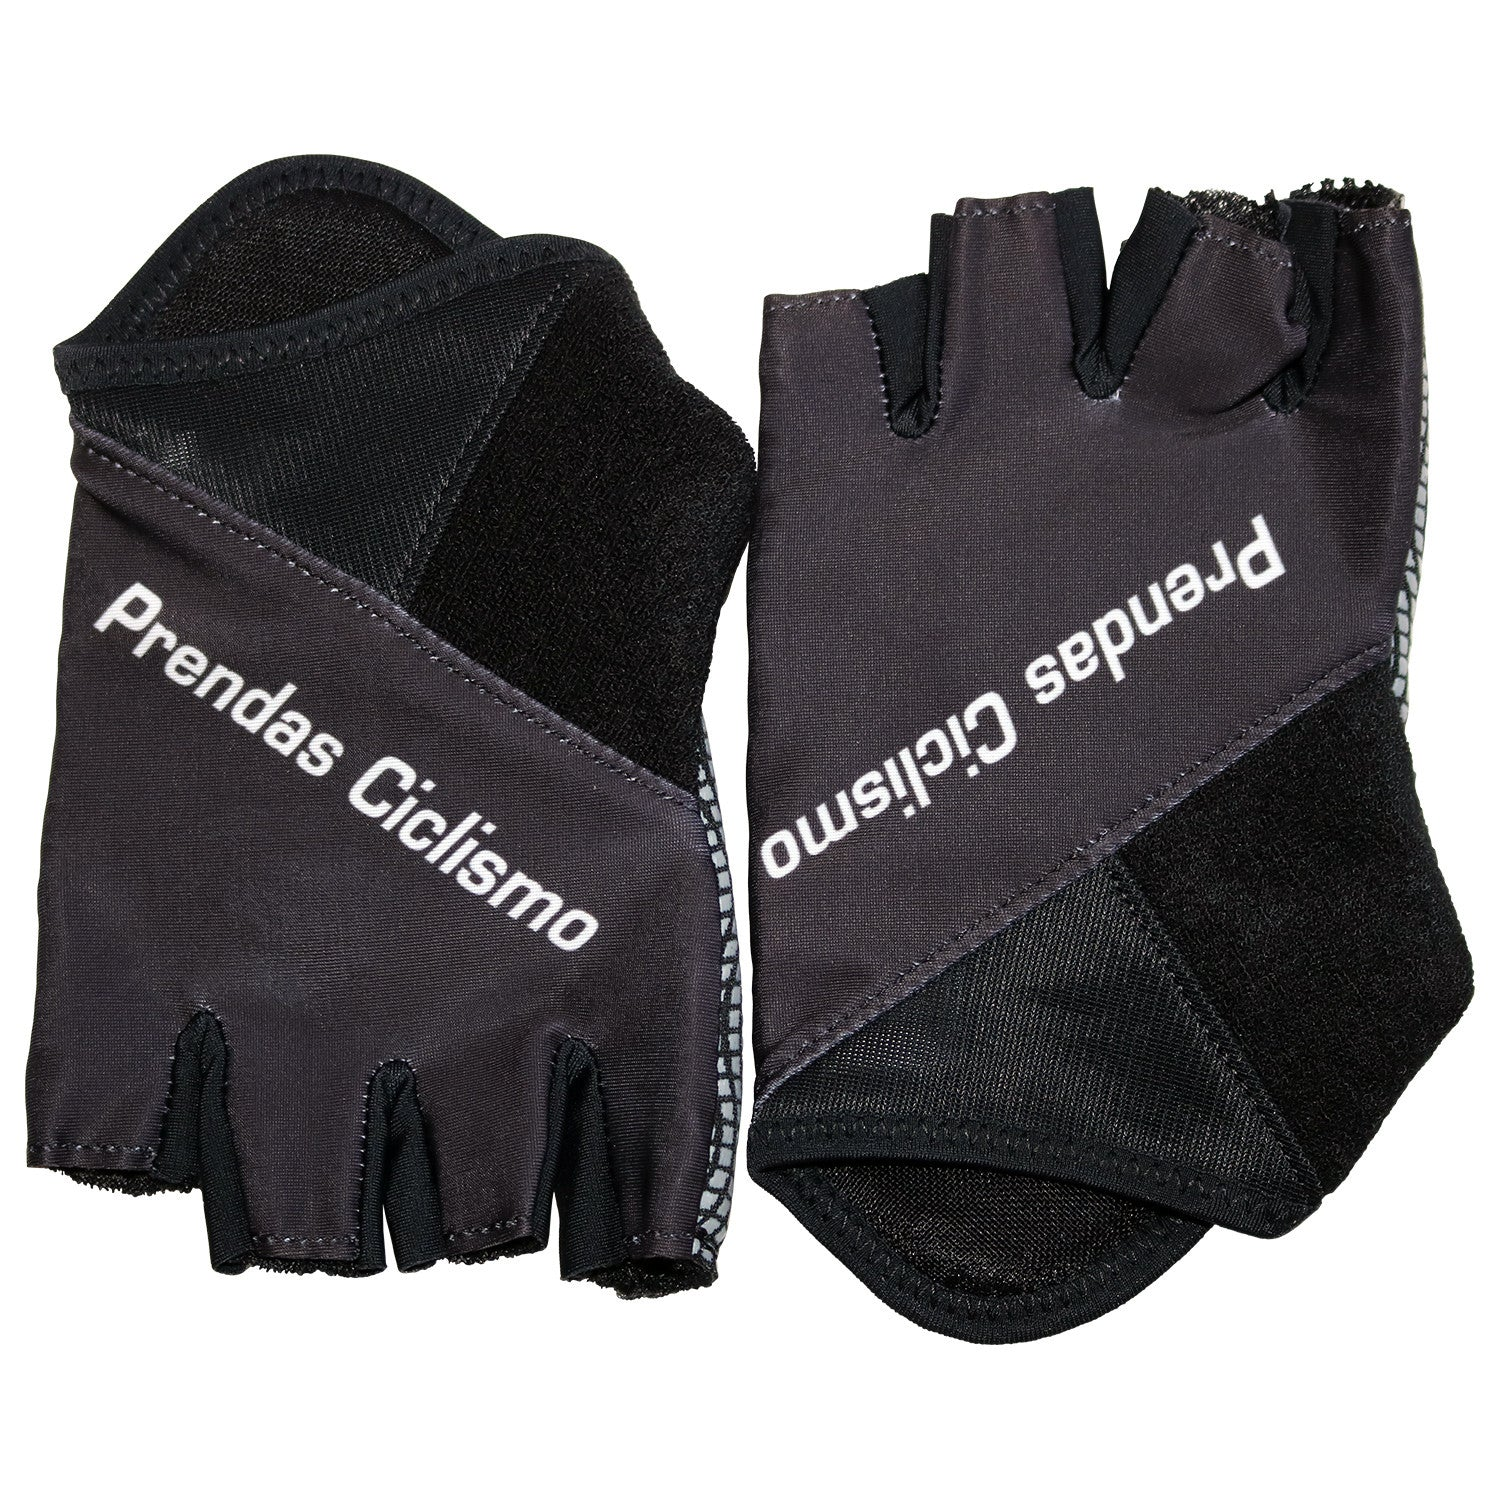 Prendas Deluxe Summer CyclingGloves